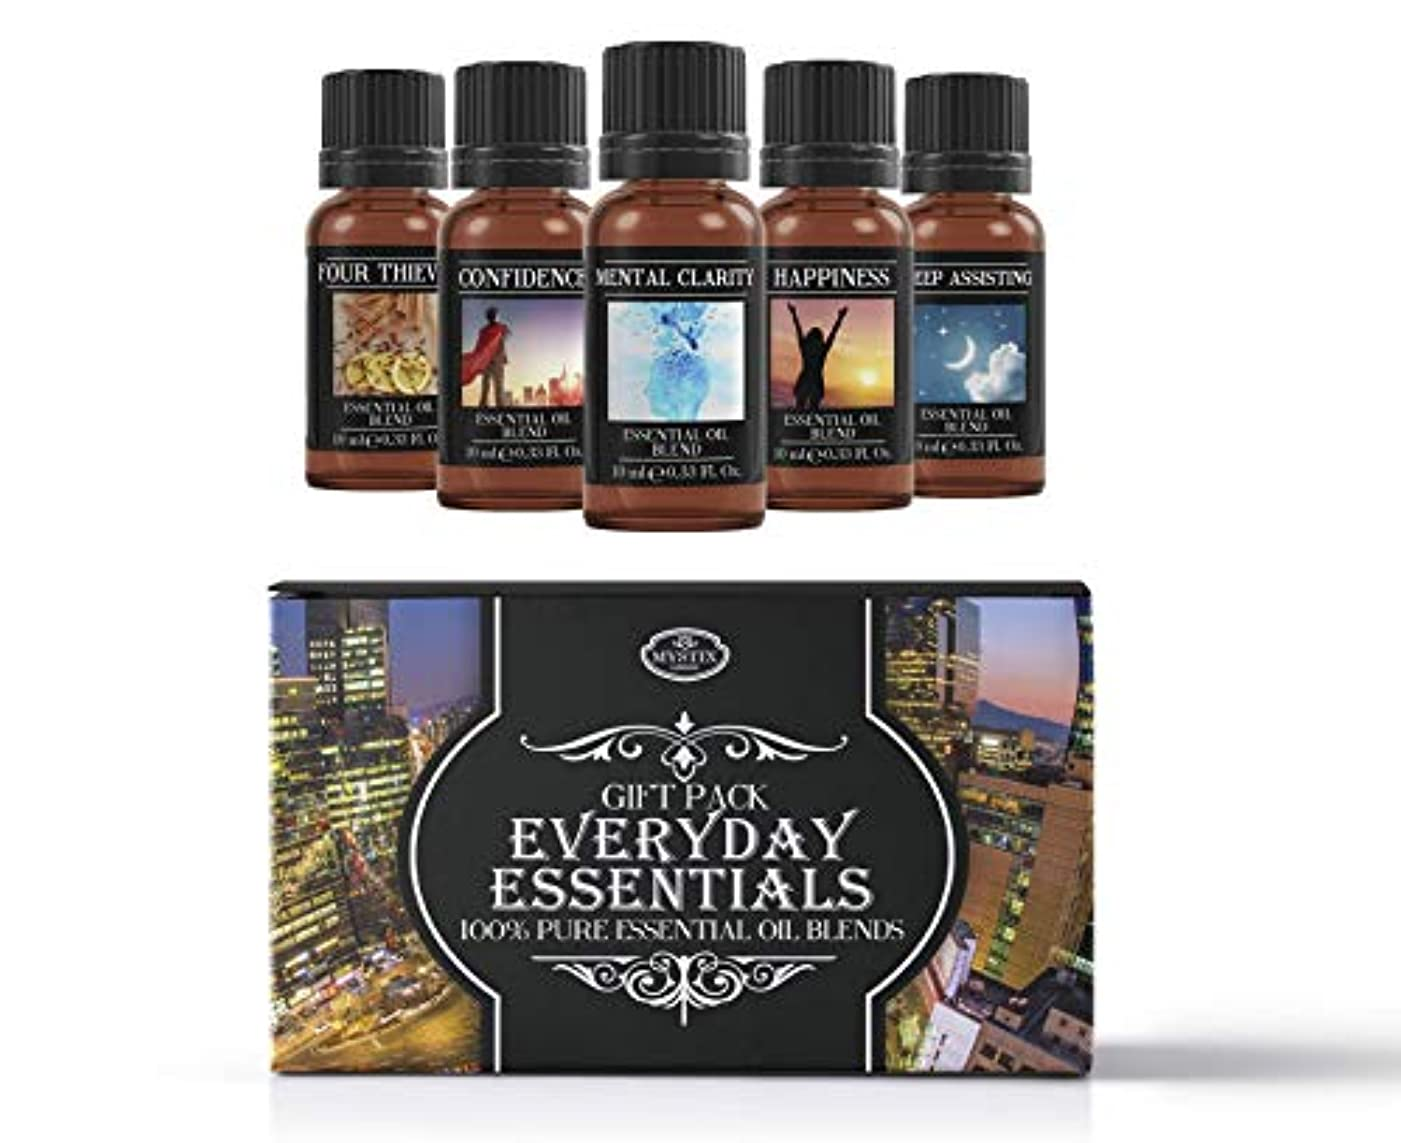 原稿サーバント茎Everyday Essentials | Essential Oil Blend Gift Pack | Confidence, Four Thieves, Happiness, Mental Clarity, Sleep...